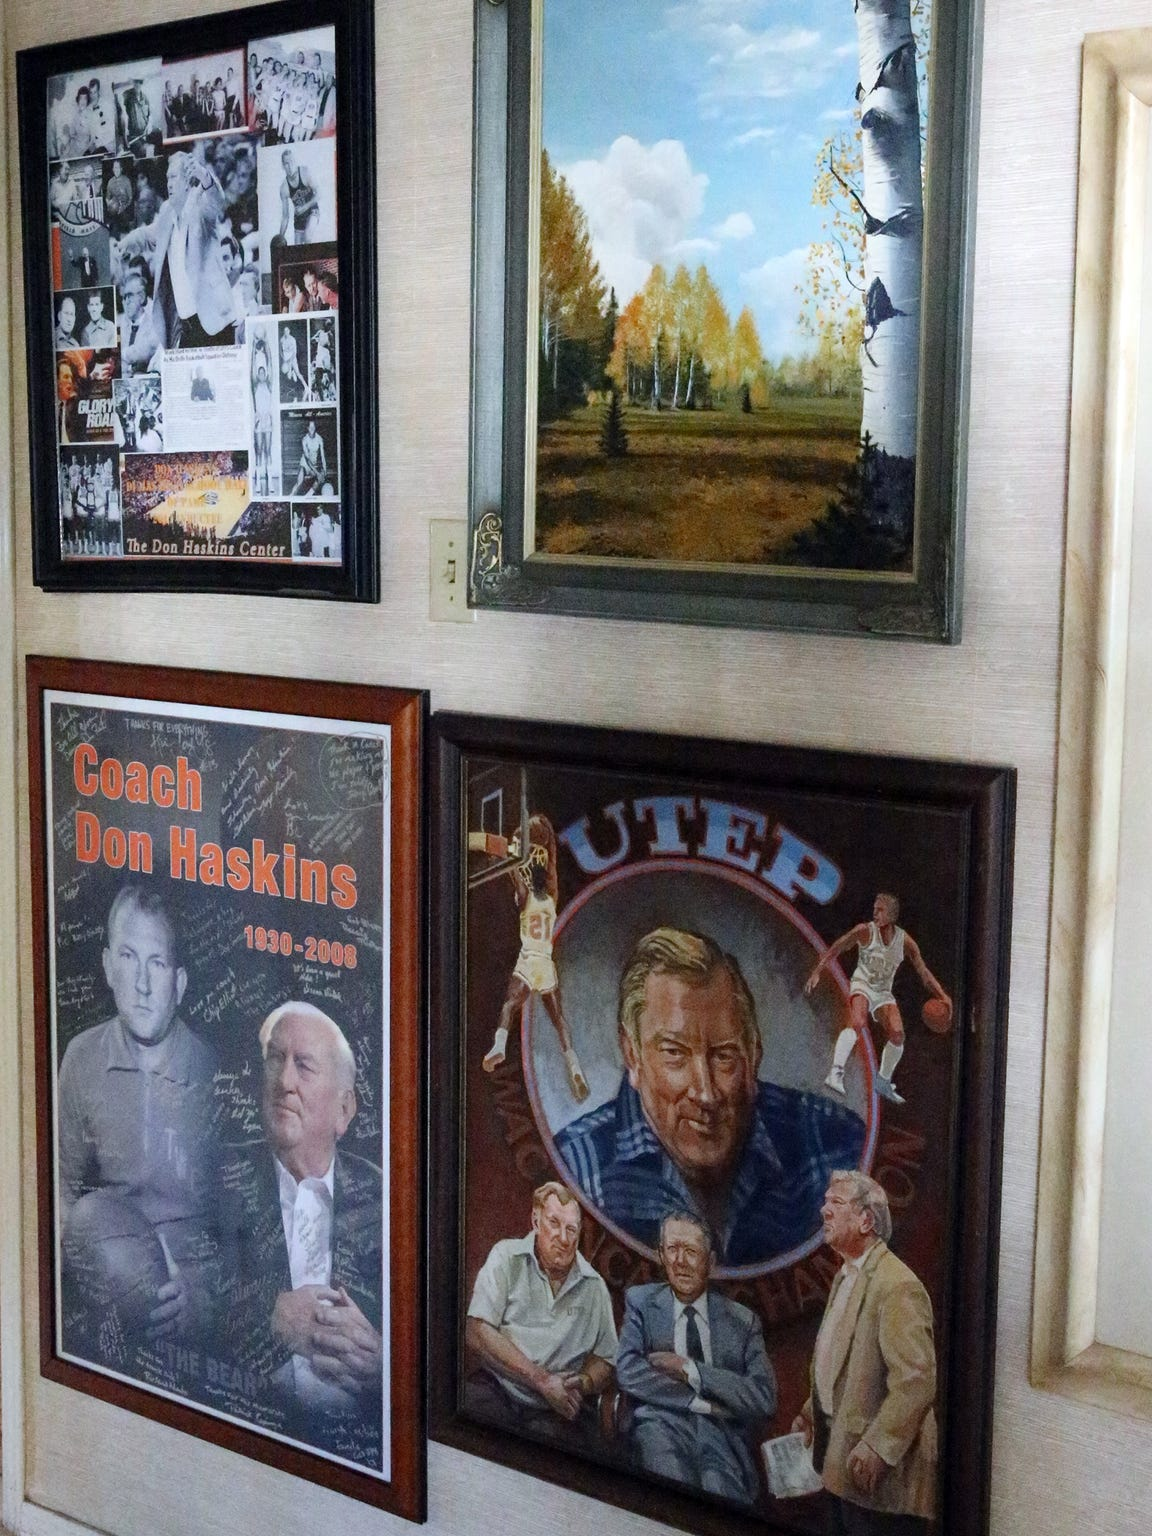 Don Haskins memorabilia in the Haskins home.